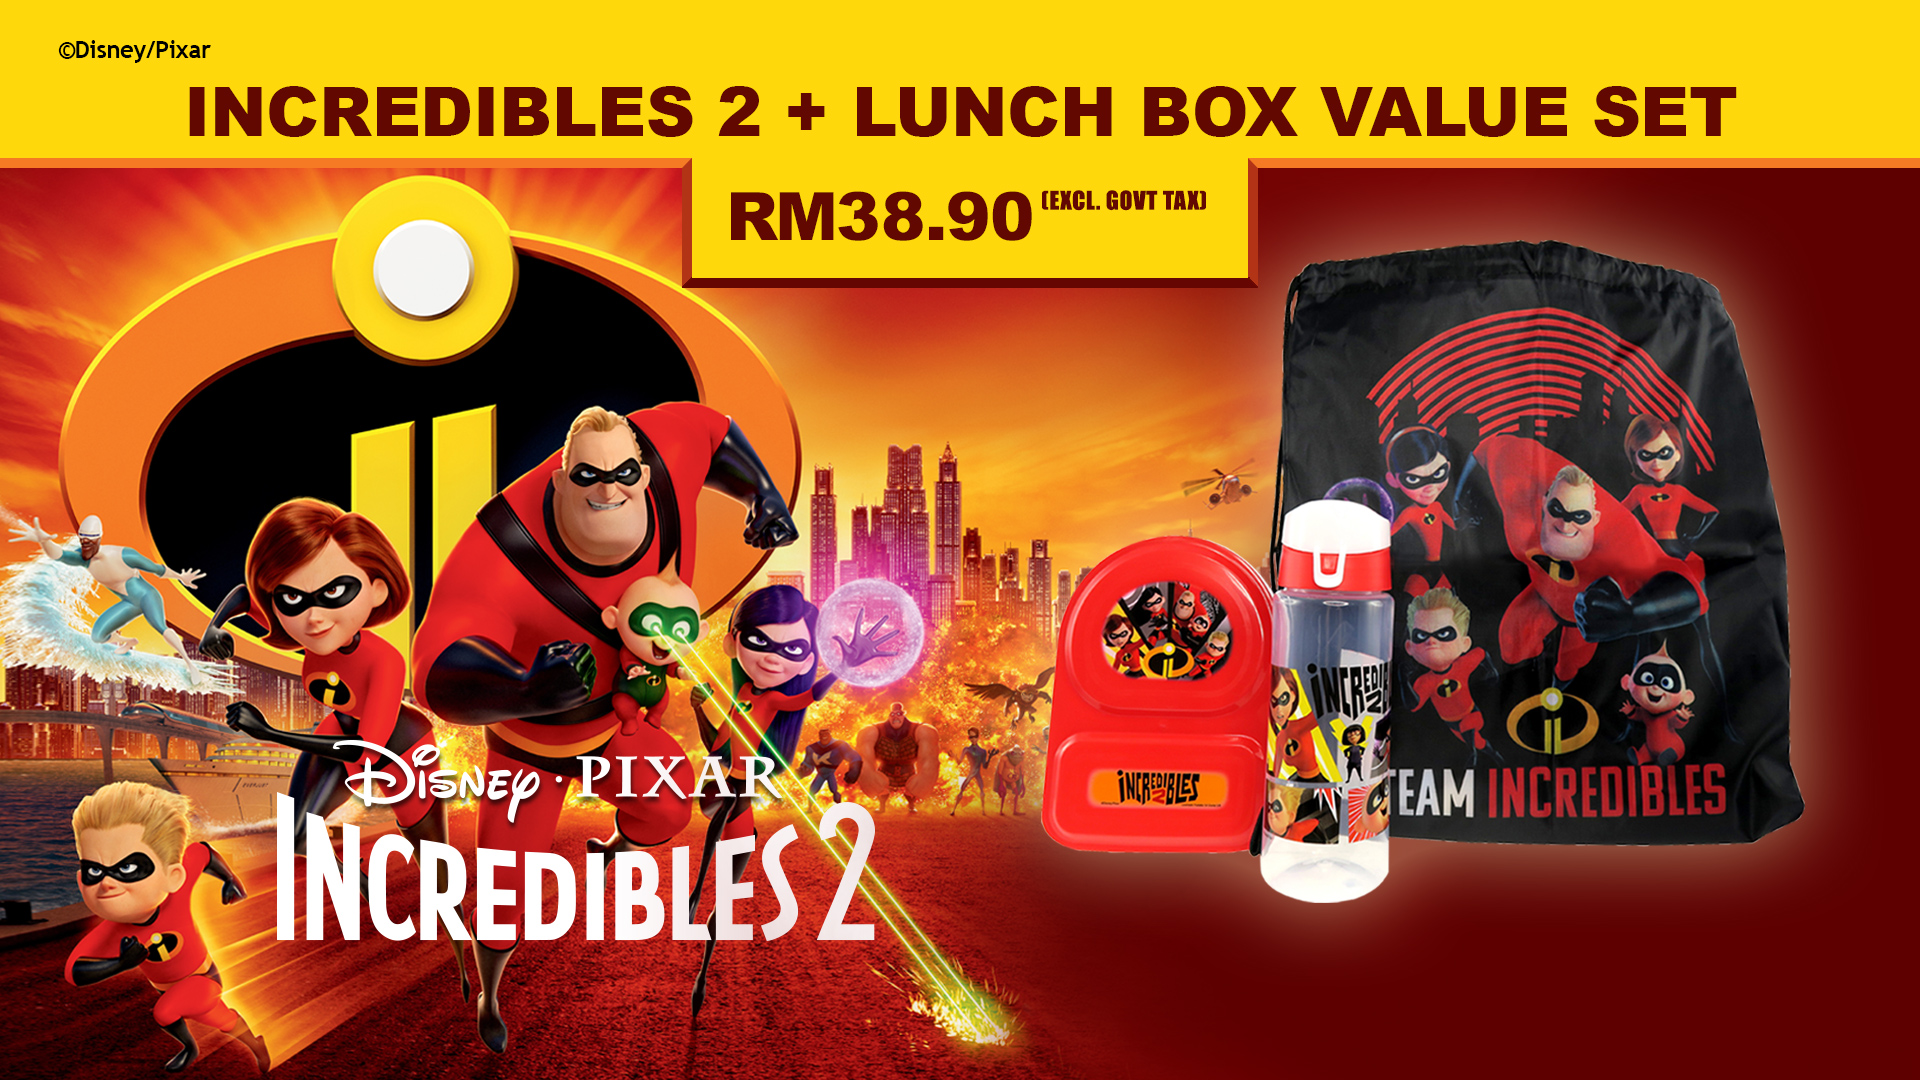 INCREDIBLES 2 + LUNCH BOX VALUE SET